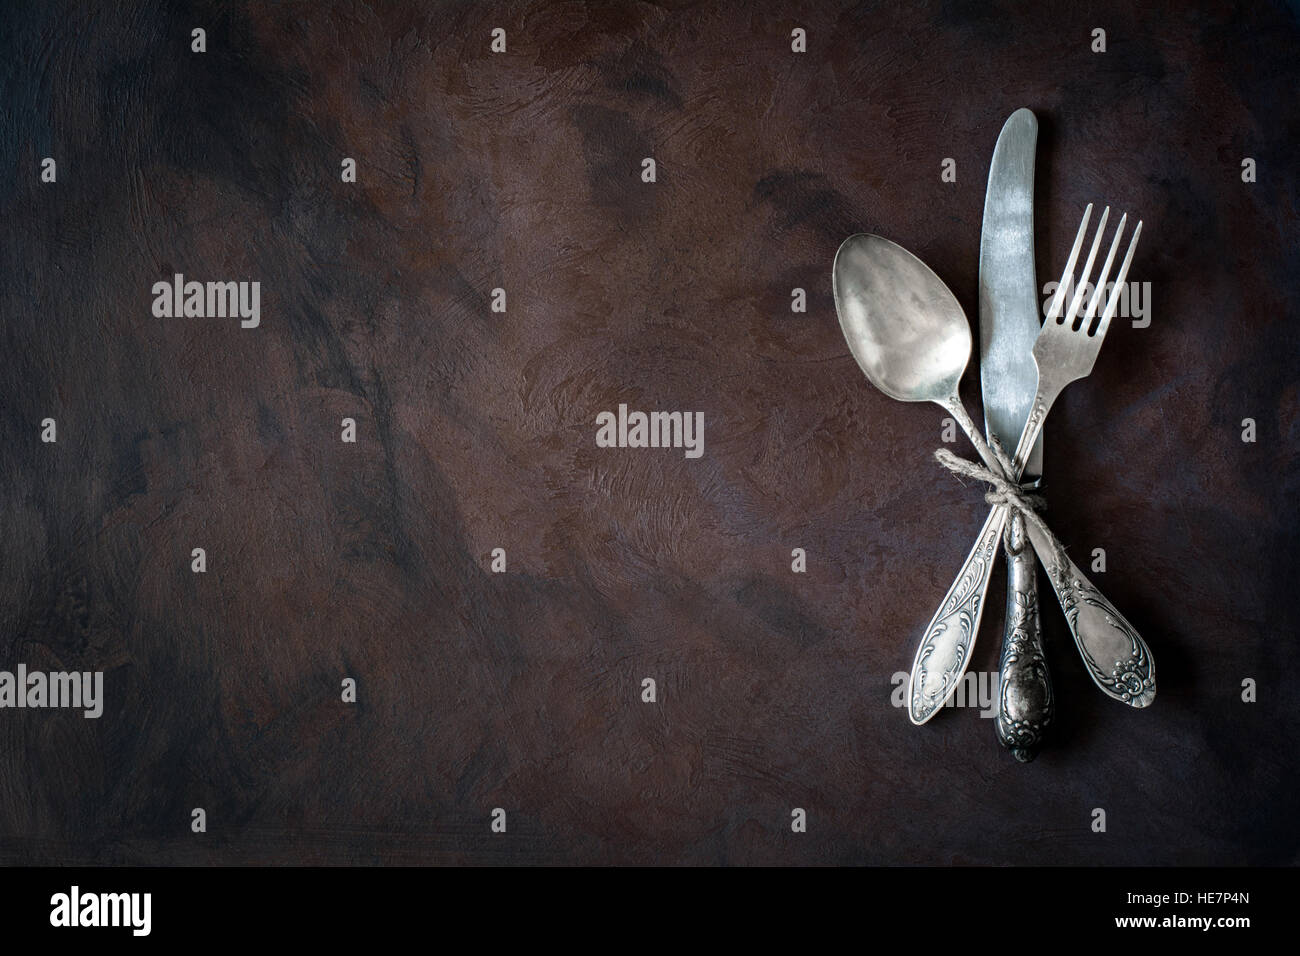 Vintage cutlery / silverware on dark background with copy space for text - Stock Image